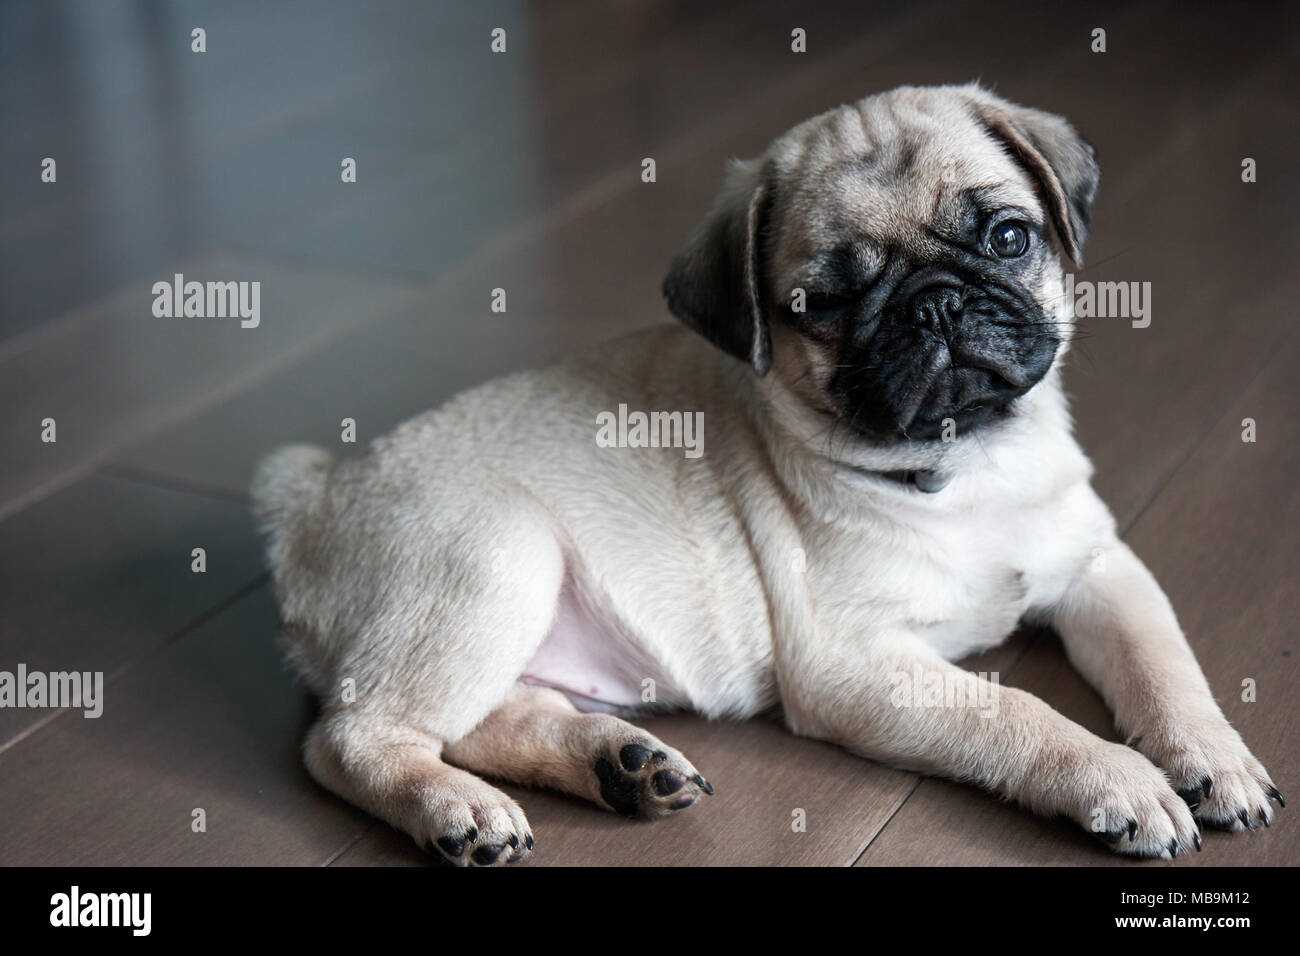 Adorable Pug Puppy - Stock Image